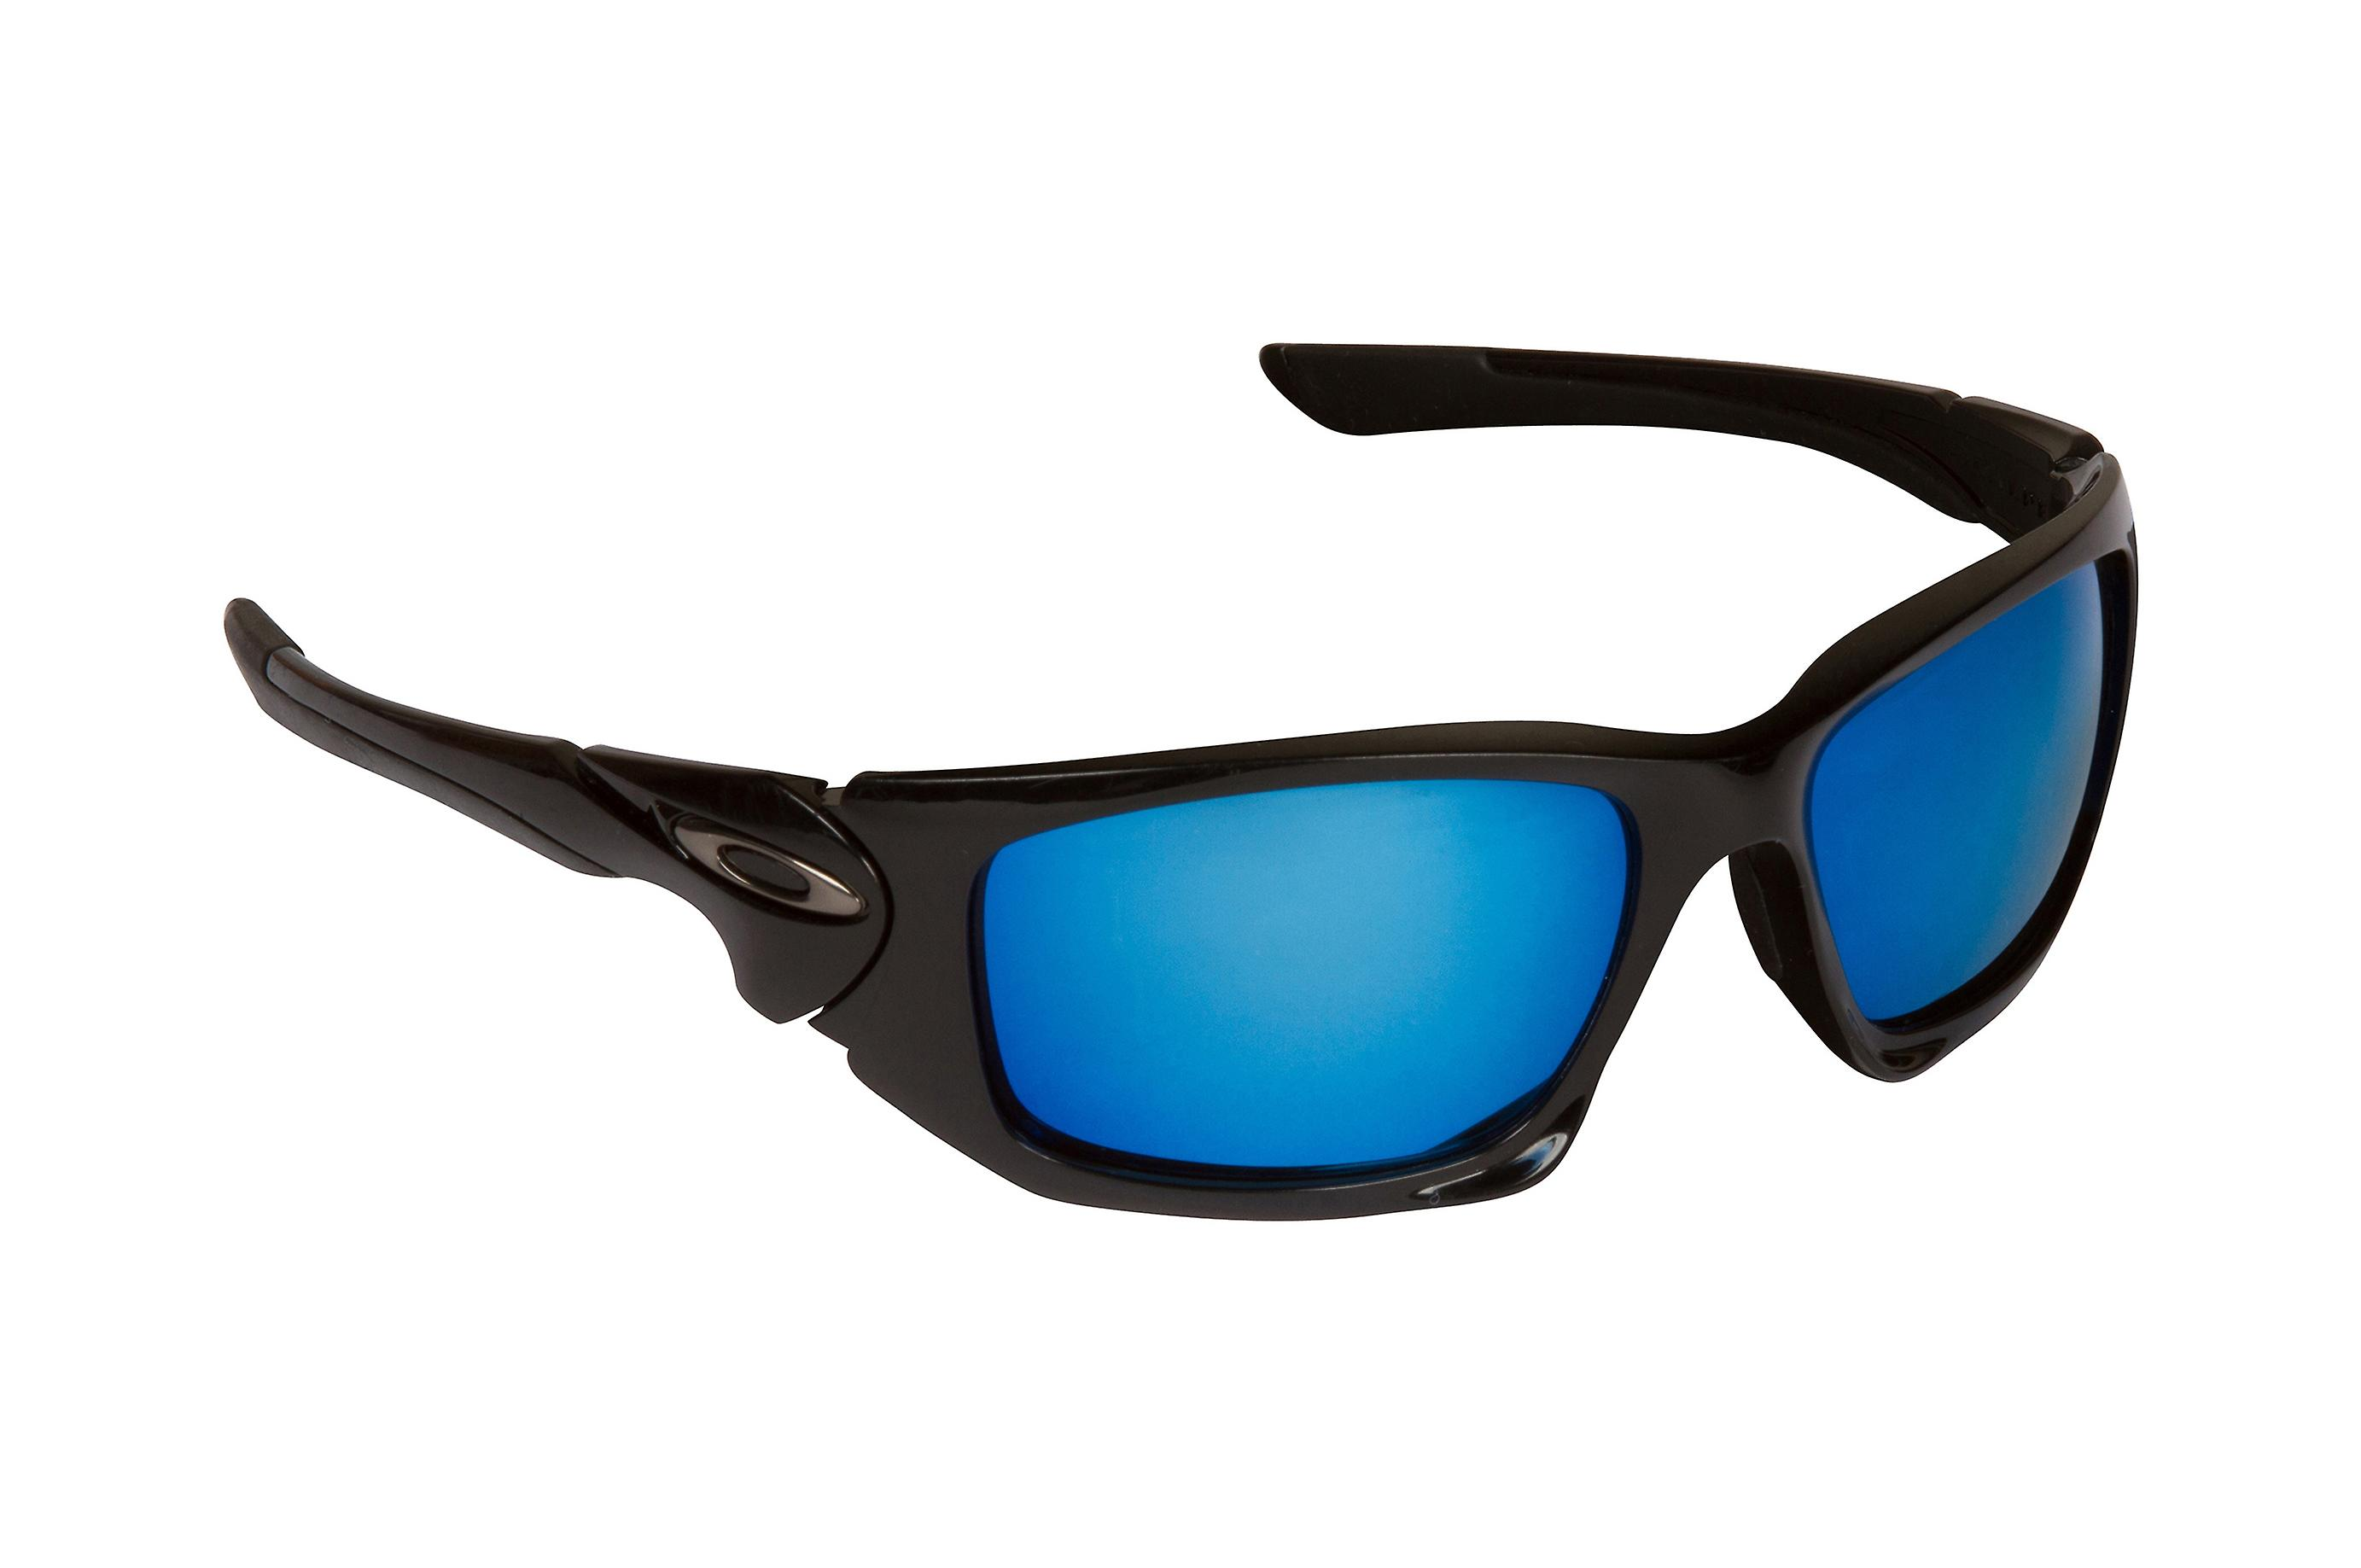 Scalpel Replacement Lenses Polarized Blue Mirror by SEEK fits OAKLEY Sunglasses